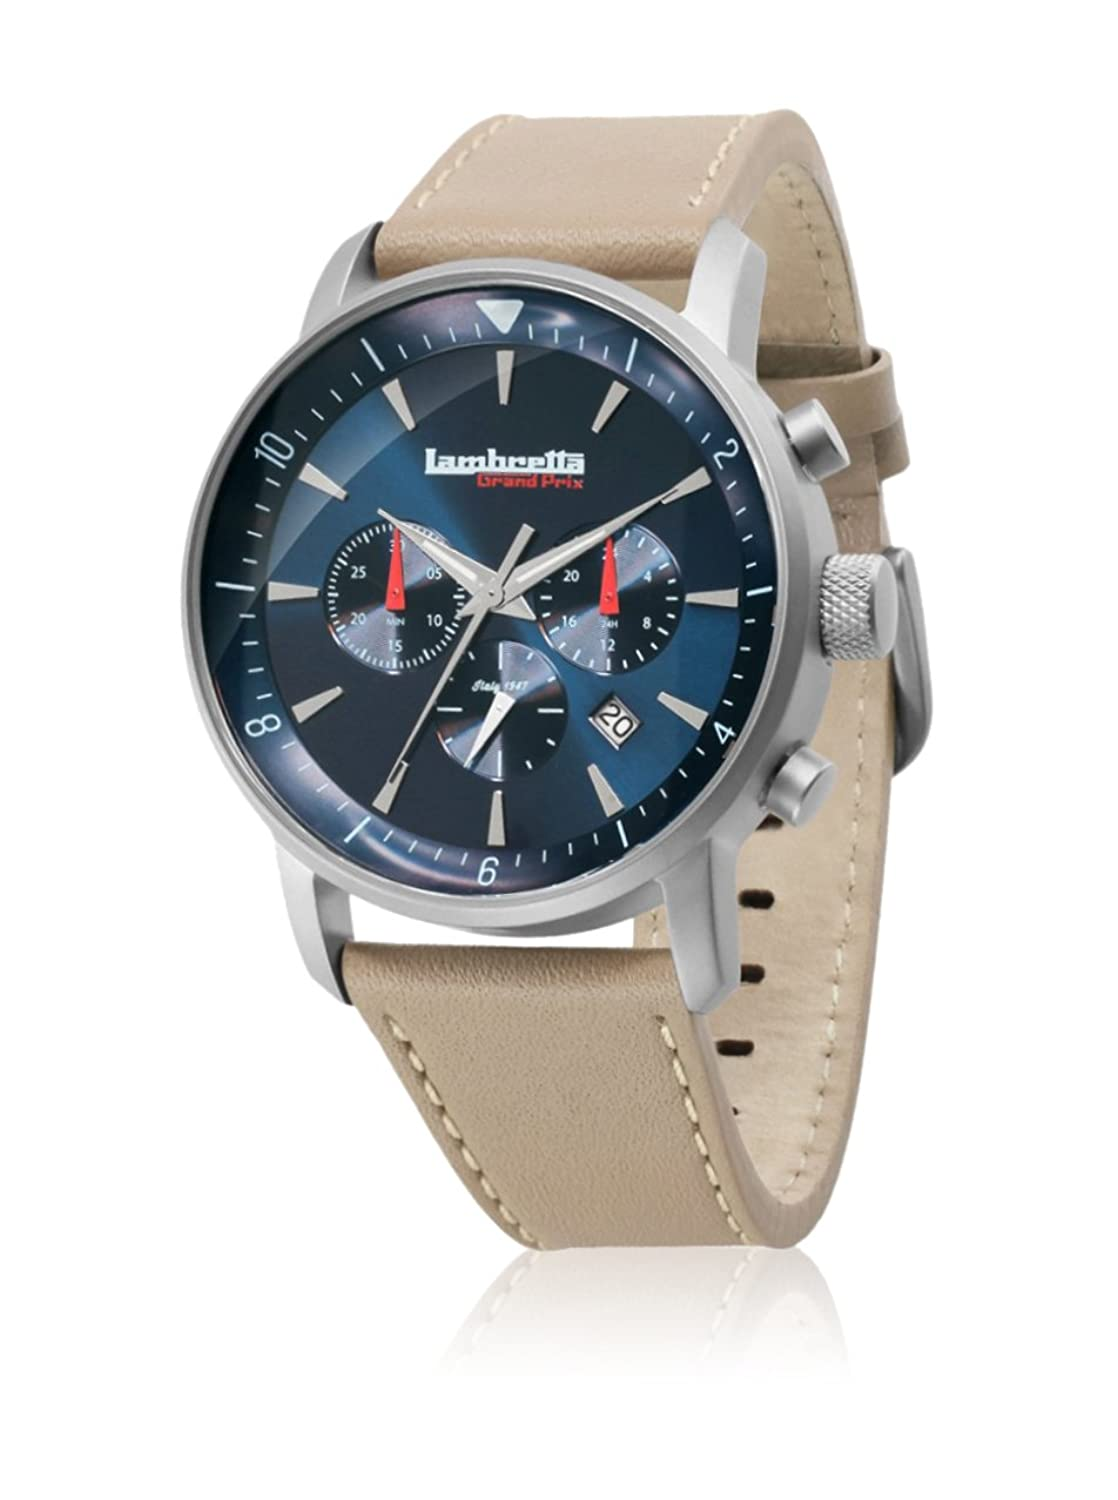 Lambretta Imola Leather Brown Chronographe Quartz Acier Blanc Cuir Brun RetrÒ Racing Homme Montre